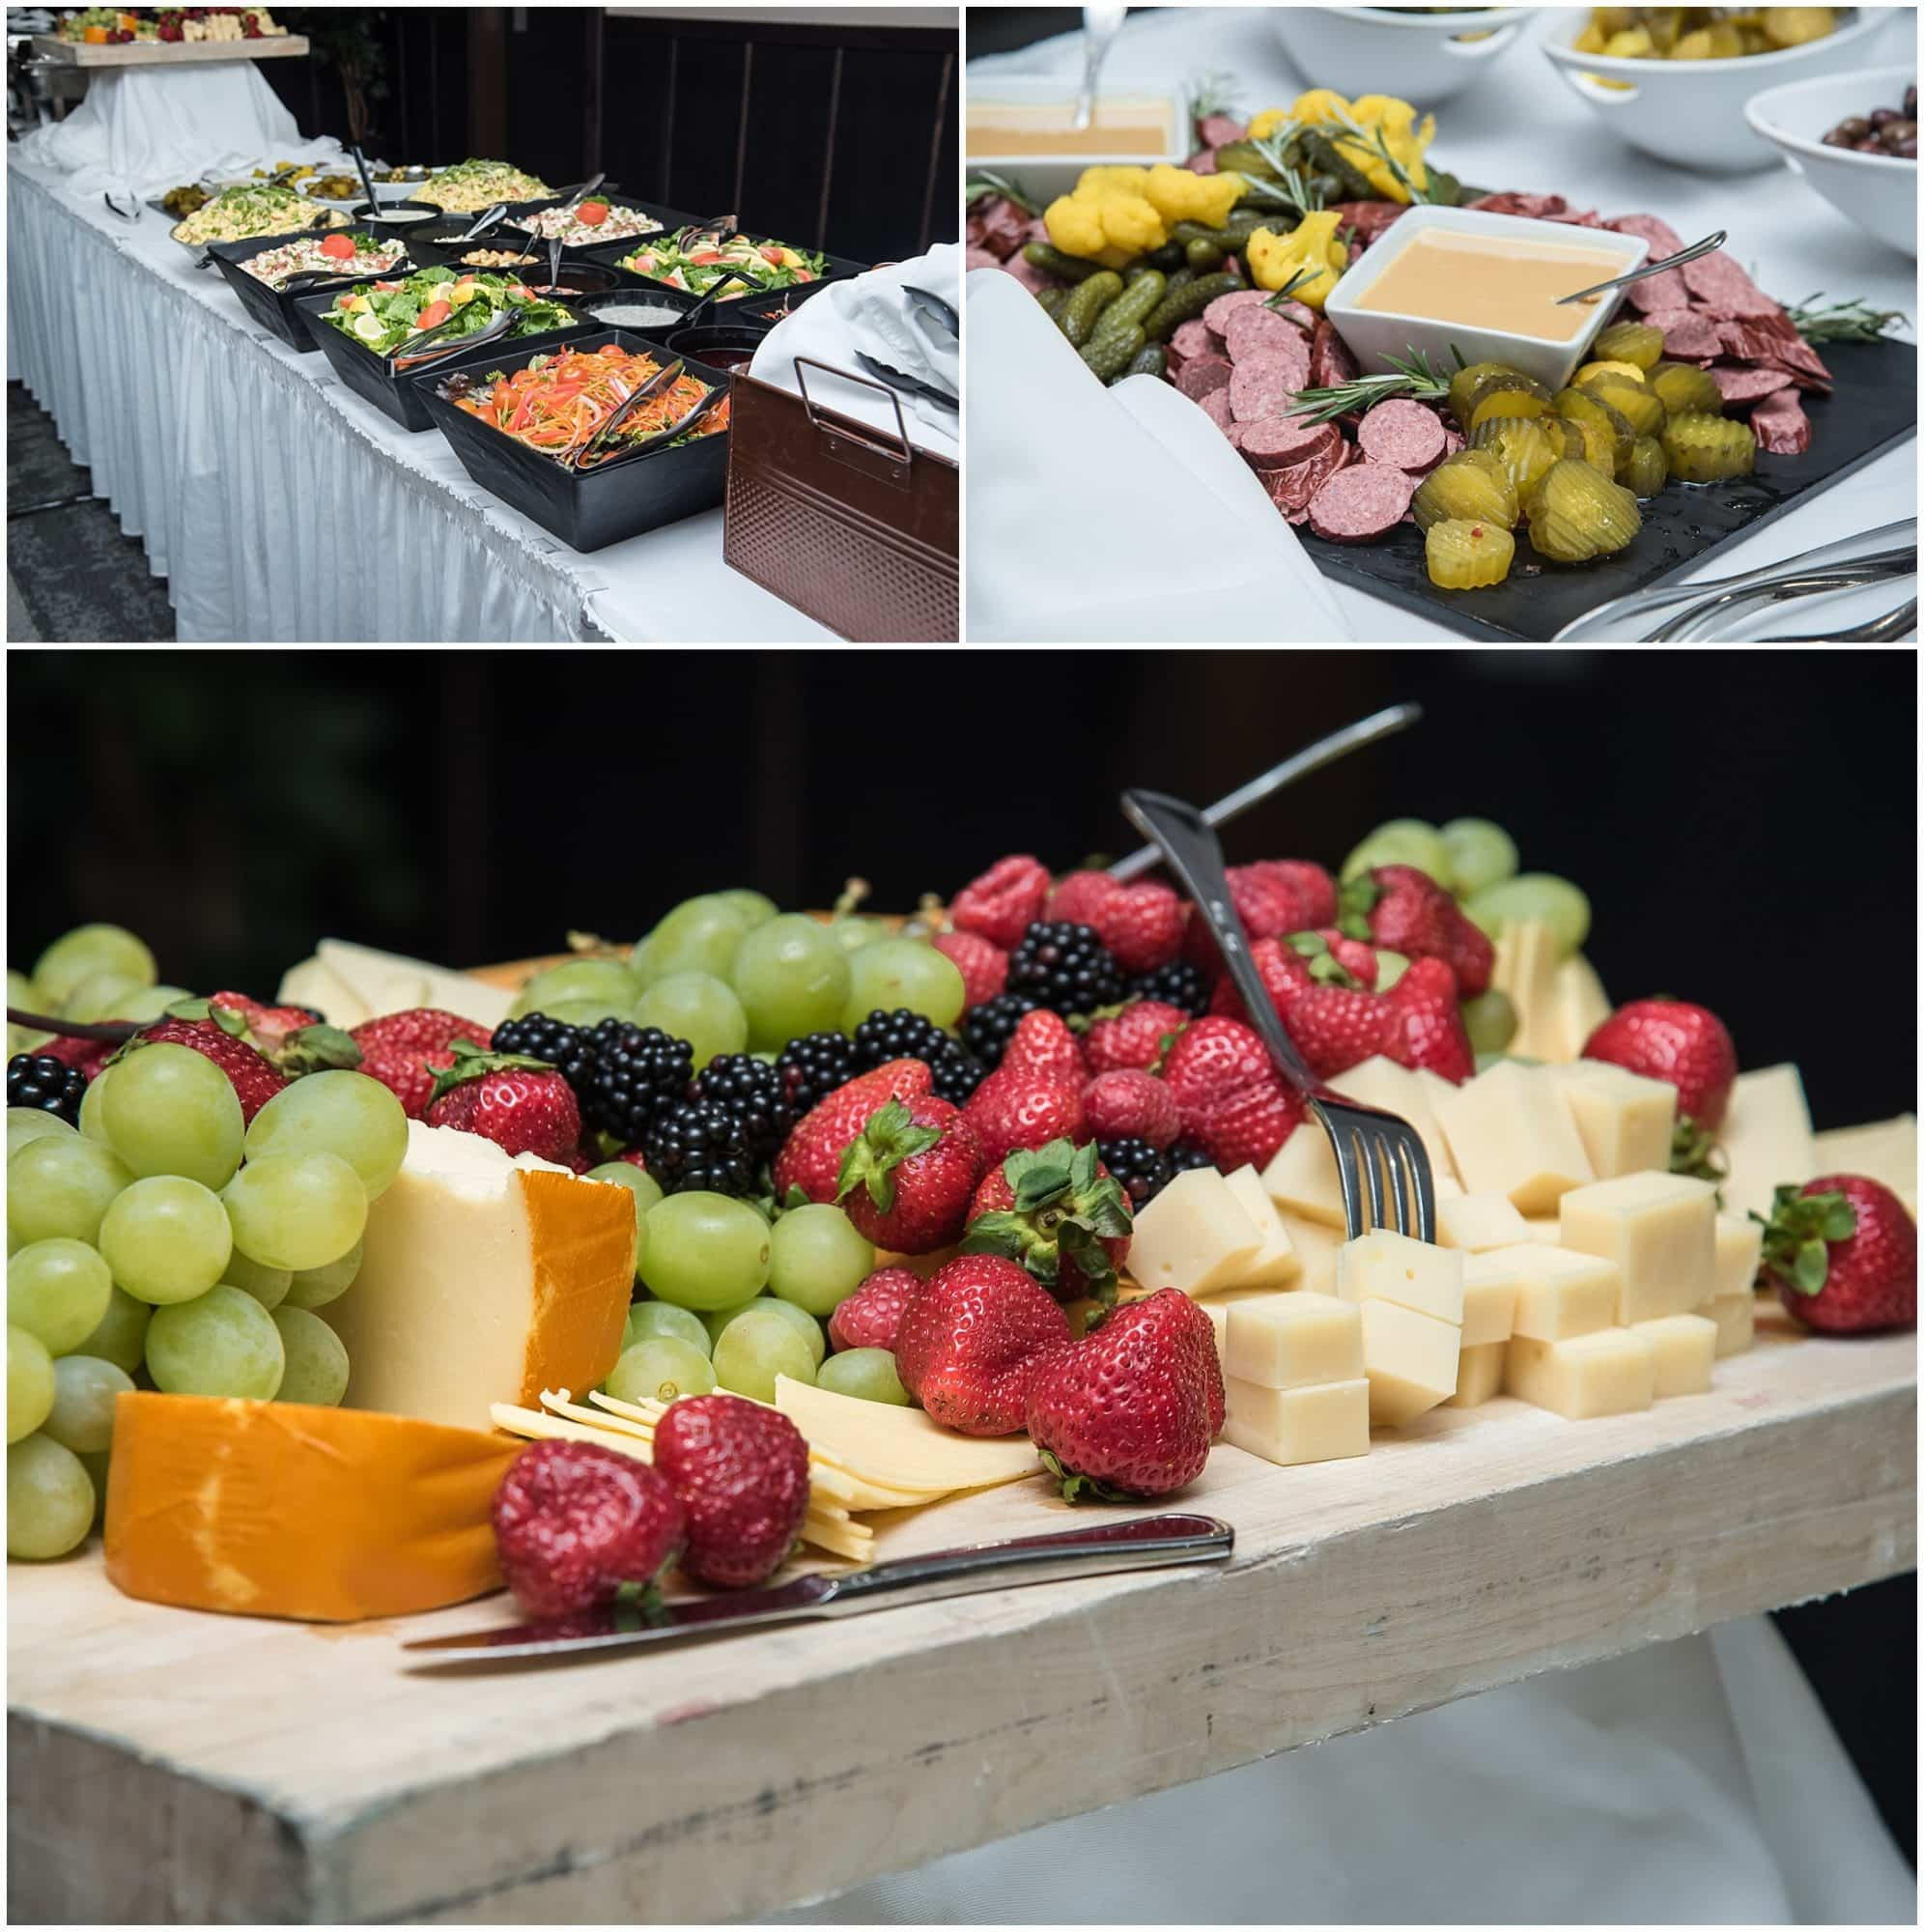 Salads, fruit and meats set out for wedding guests during a Best Western Chocolate Lake catered wedding.